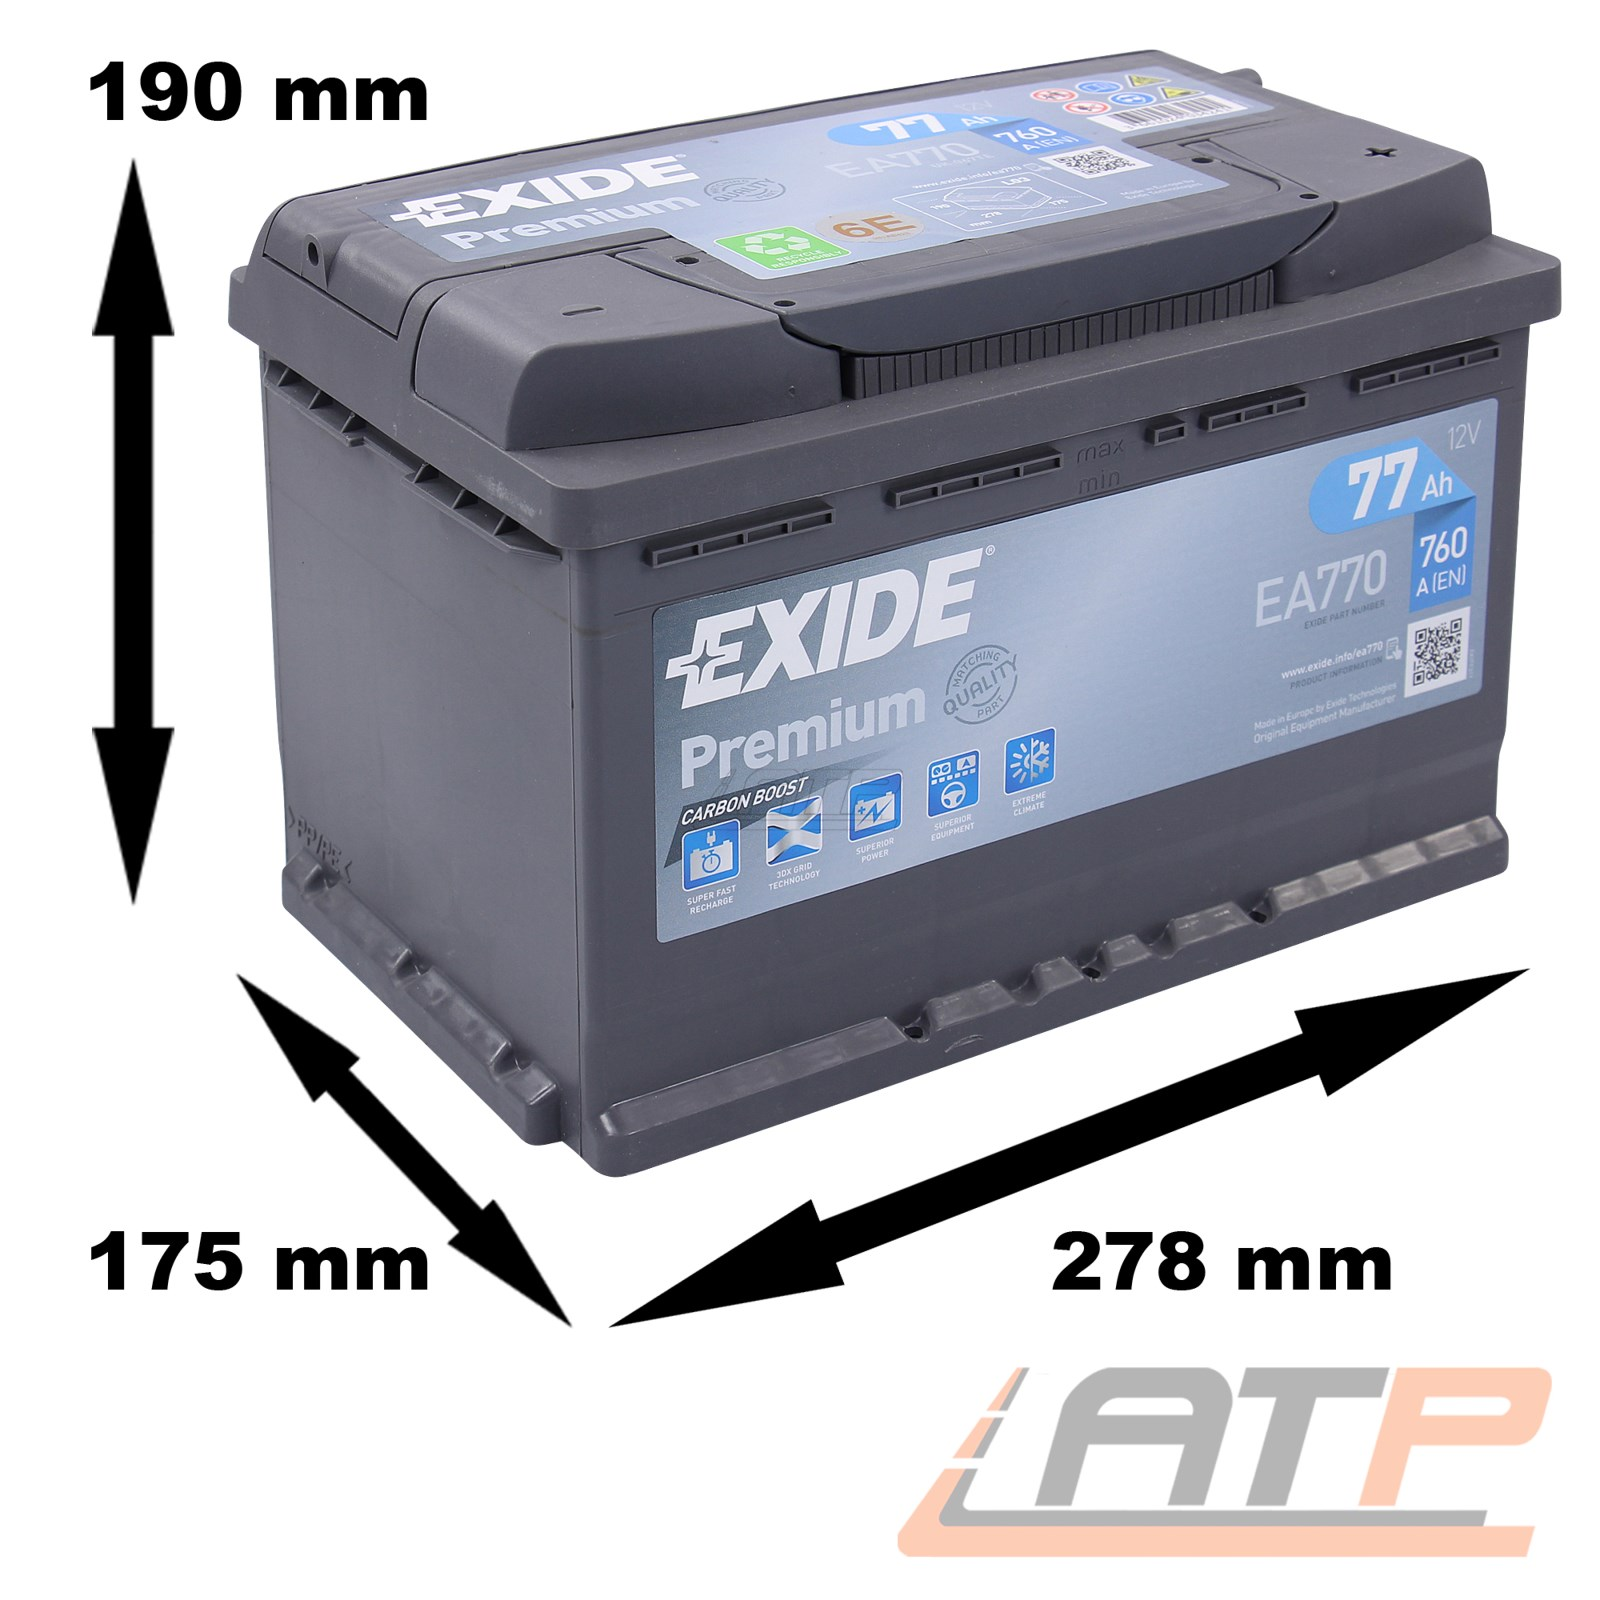 autobatterie pkw batterie exide ea770 premium carbon boost 77 ah 760 a 31964257 ebay. Black Bedroom Furniture Sets. Home Design Ideas